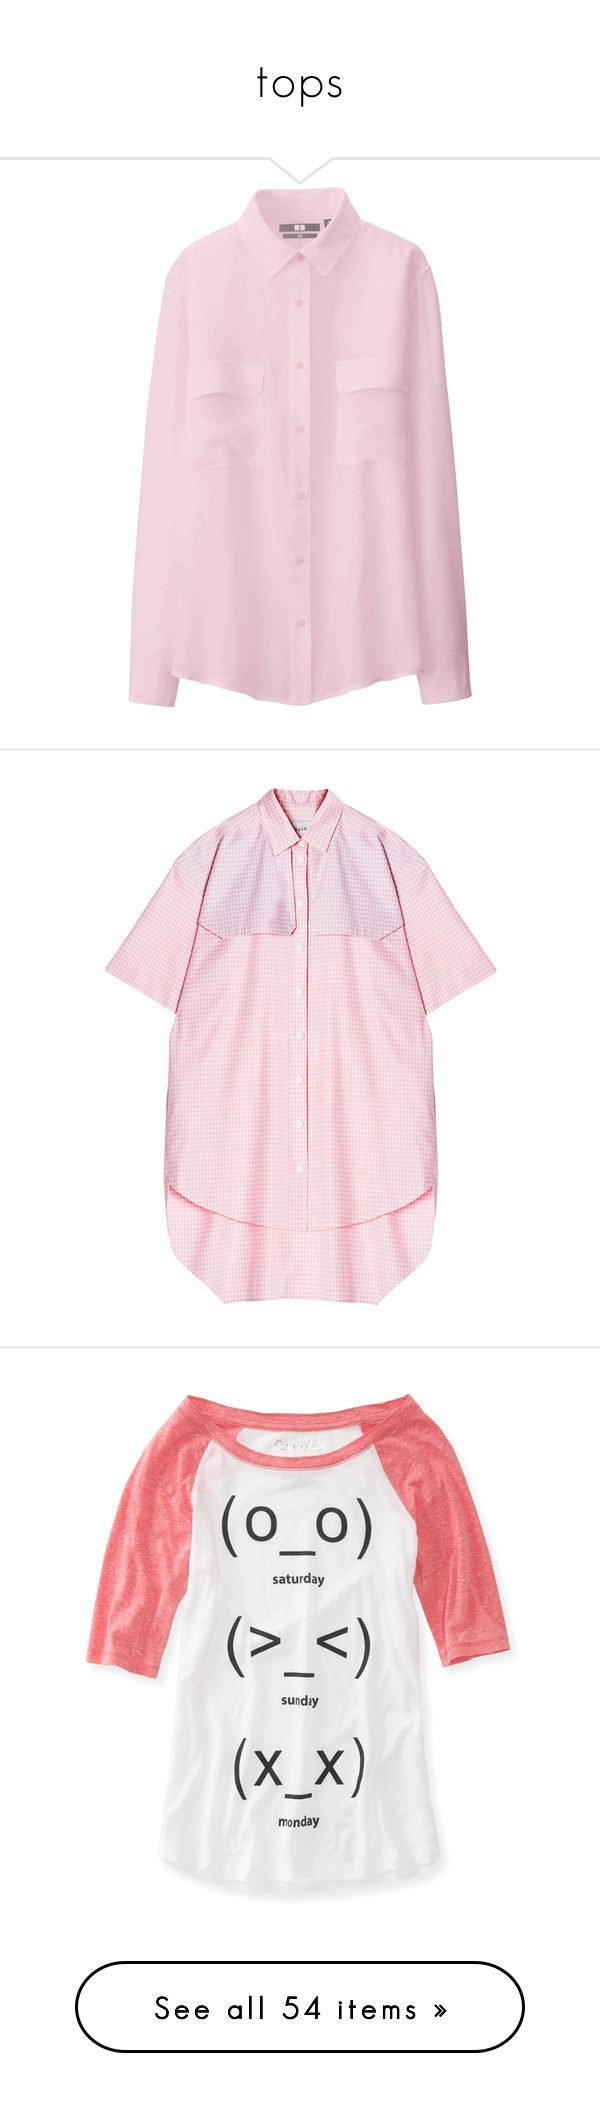 """""""tops"""" by totoro-2342 ❤ liked on Polyvore featuring tops, blouses, shirts, pink, long sleeve silk blouse, long sleeve shirts, safari shirt, silk blouses, holiday blouses and dresses"""